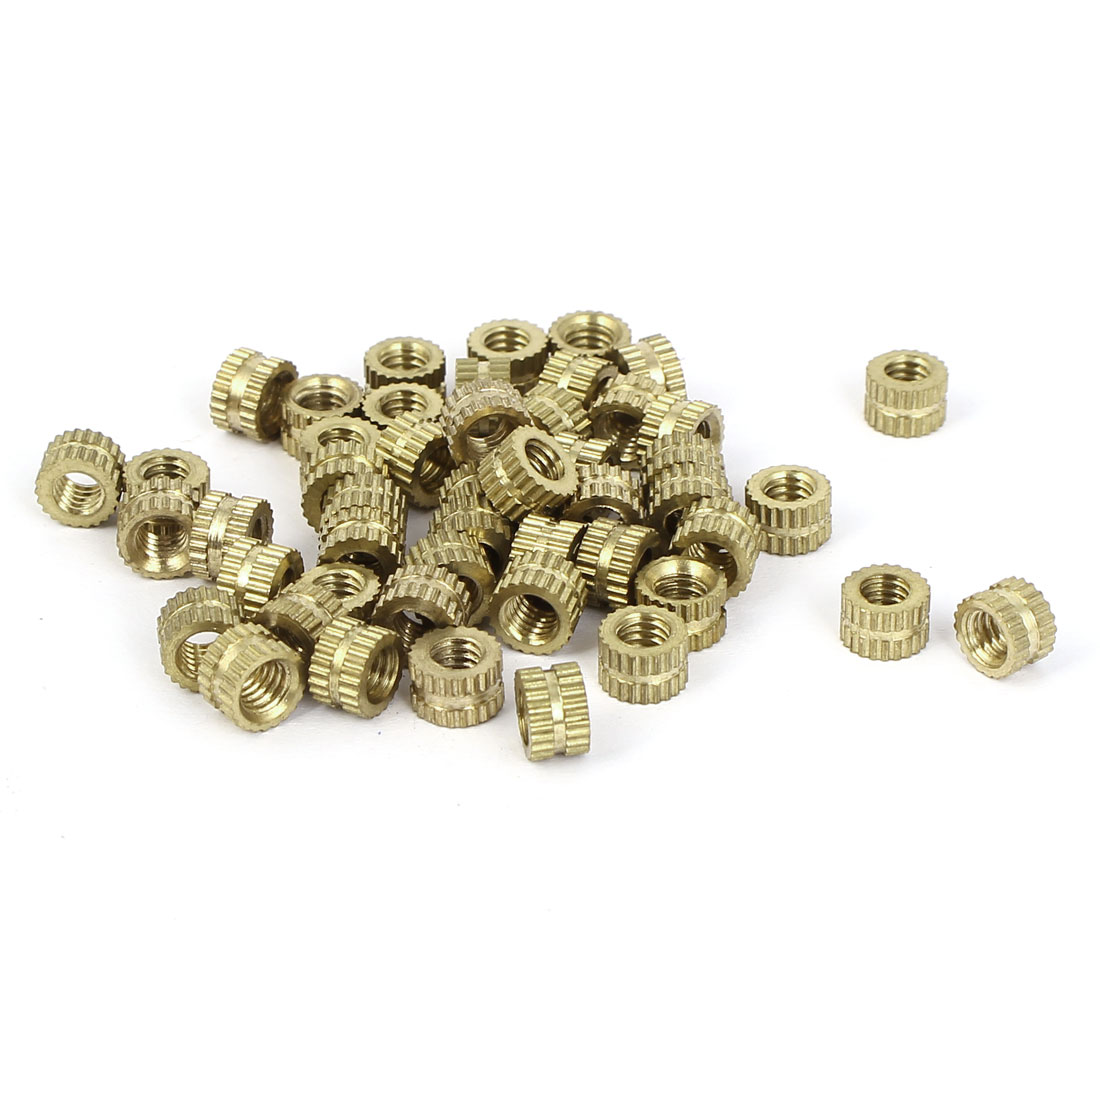 M4x4mm 6mm OD Brass Embedded Knurled Insert Thumb Nuts 50pcs